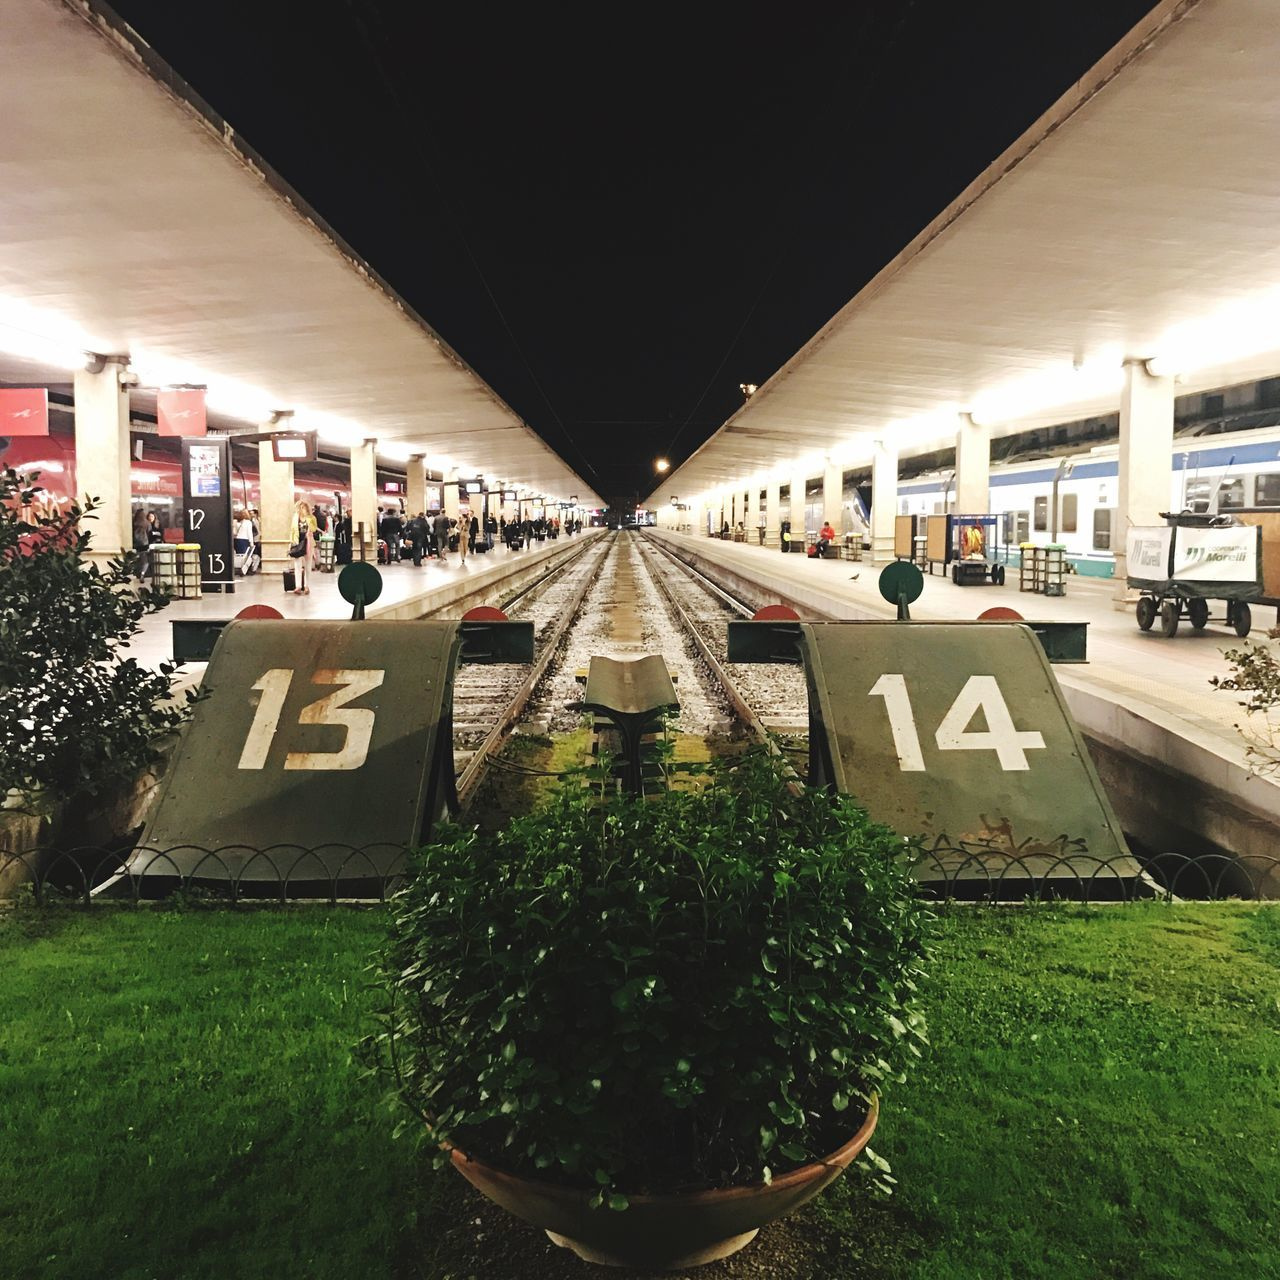 Tracks 13 14 Railway Track Illuminated Built Structure Architecture No People Night Outdoors Train Station Central Prospettive